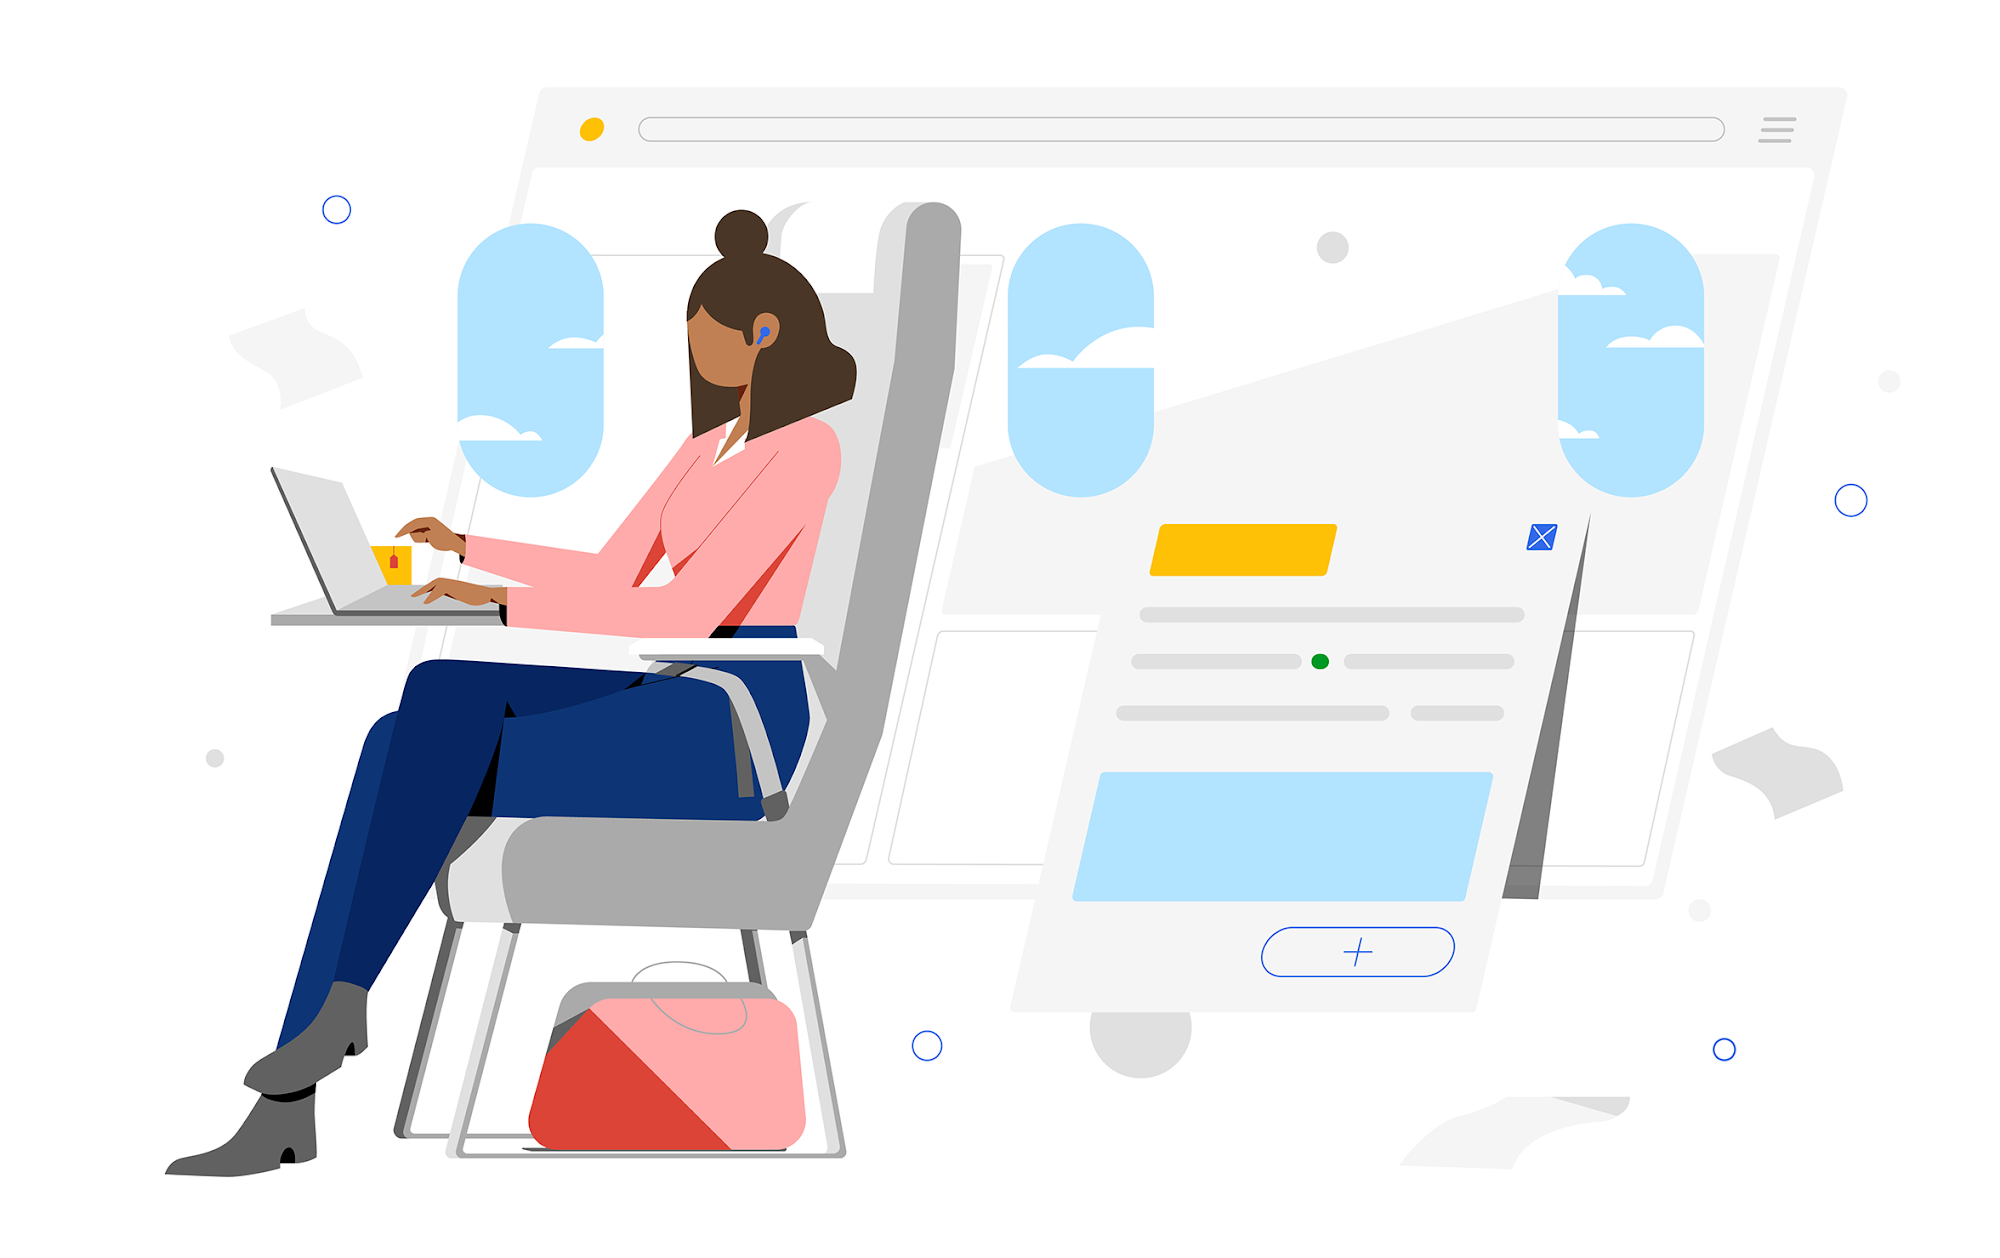 Woman seated on an aeroplane works on her laptop